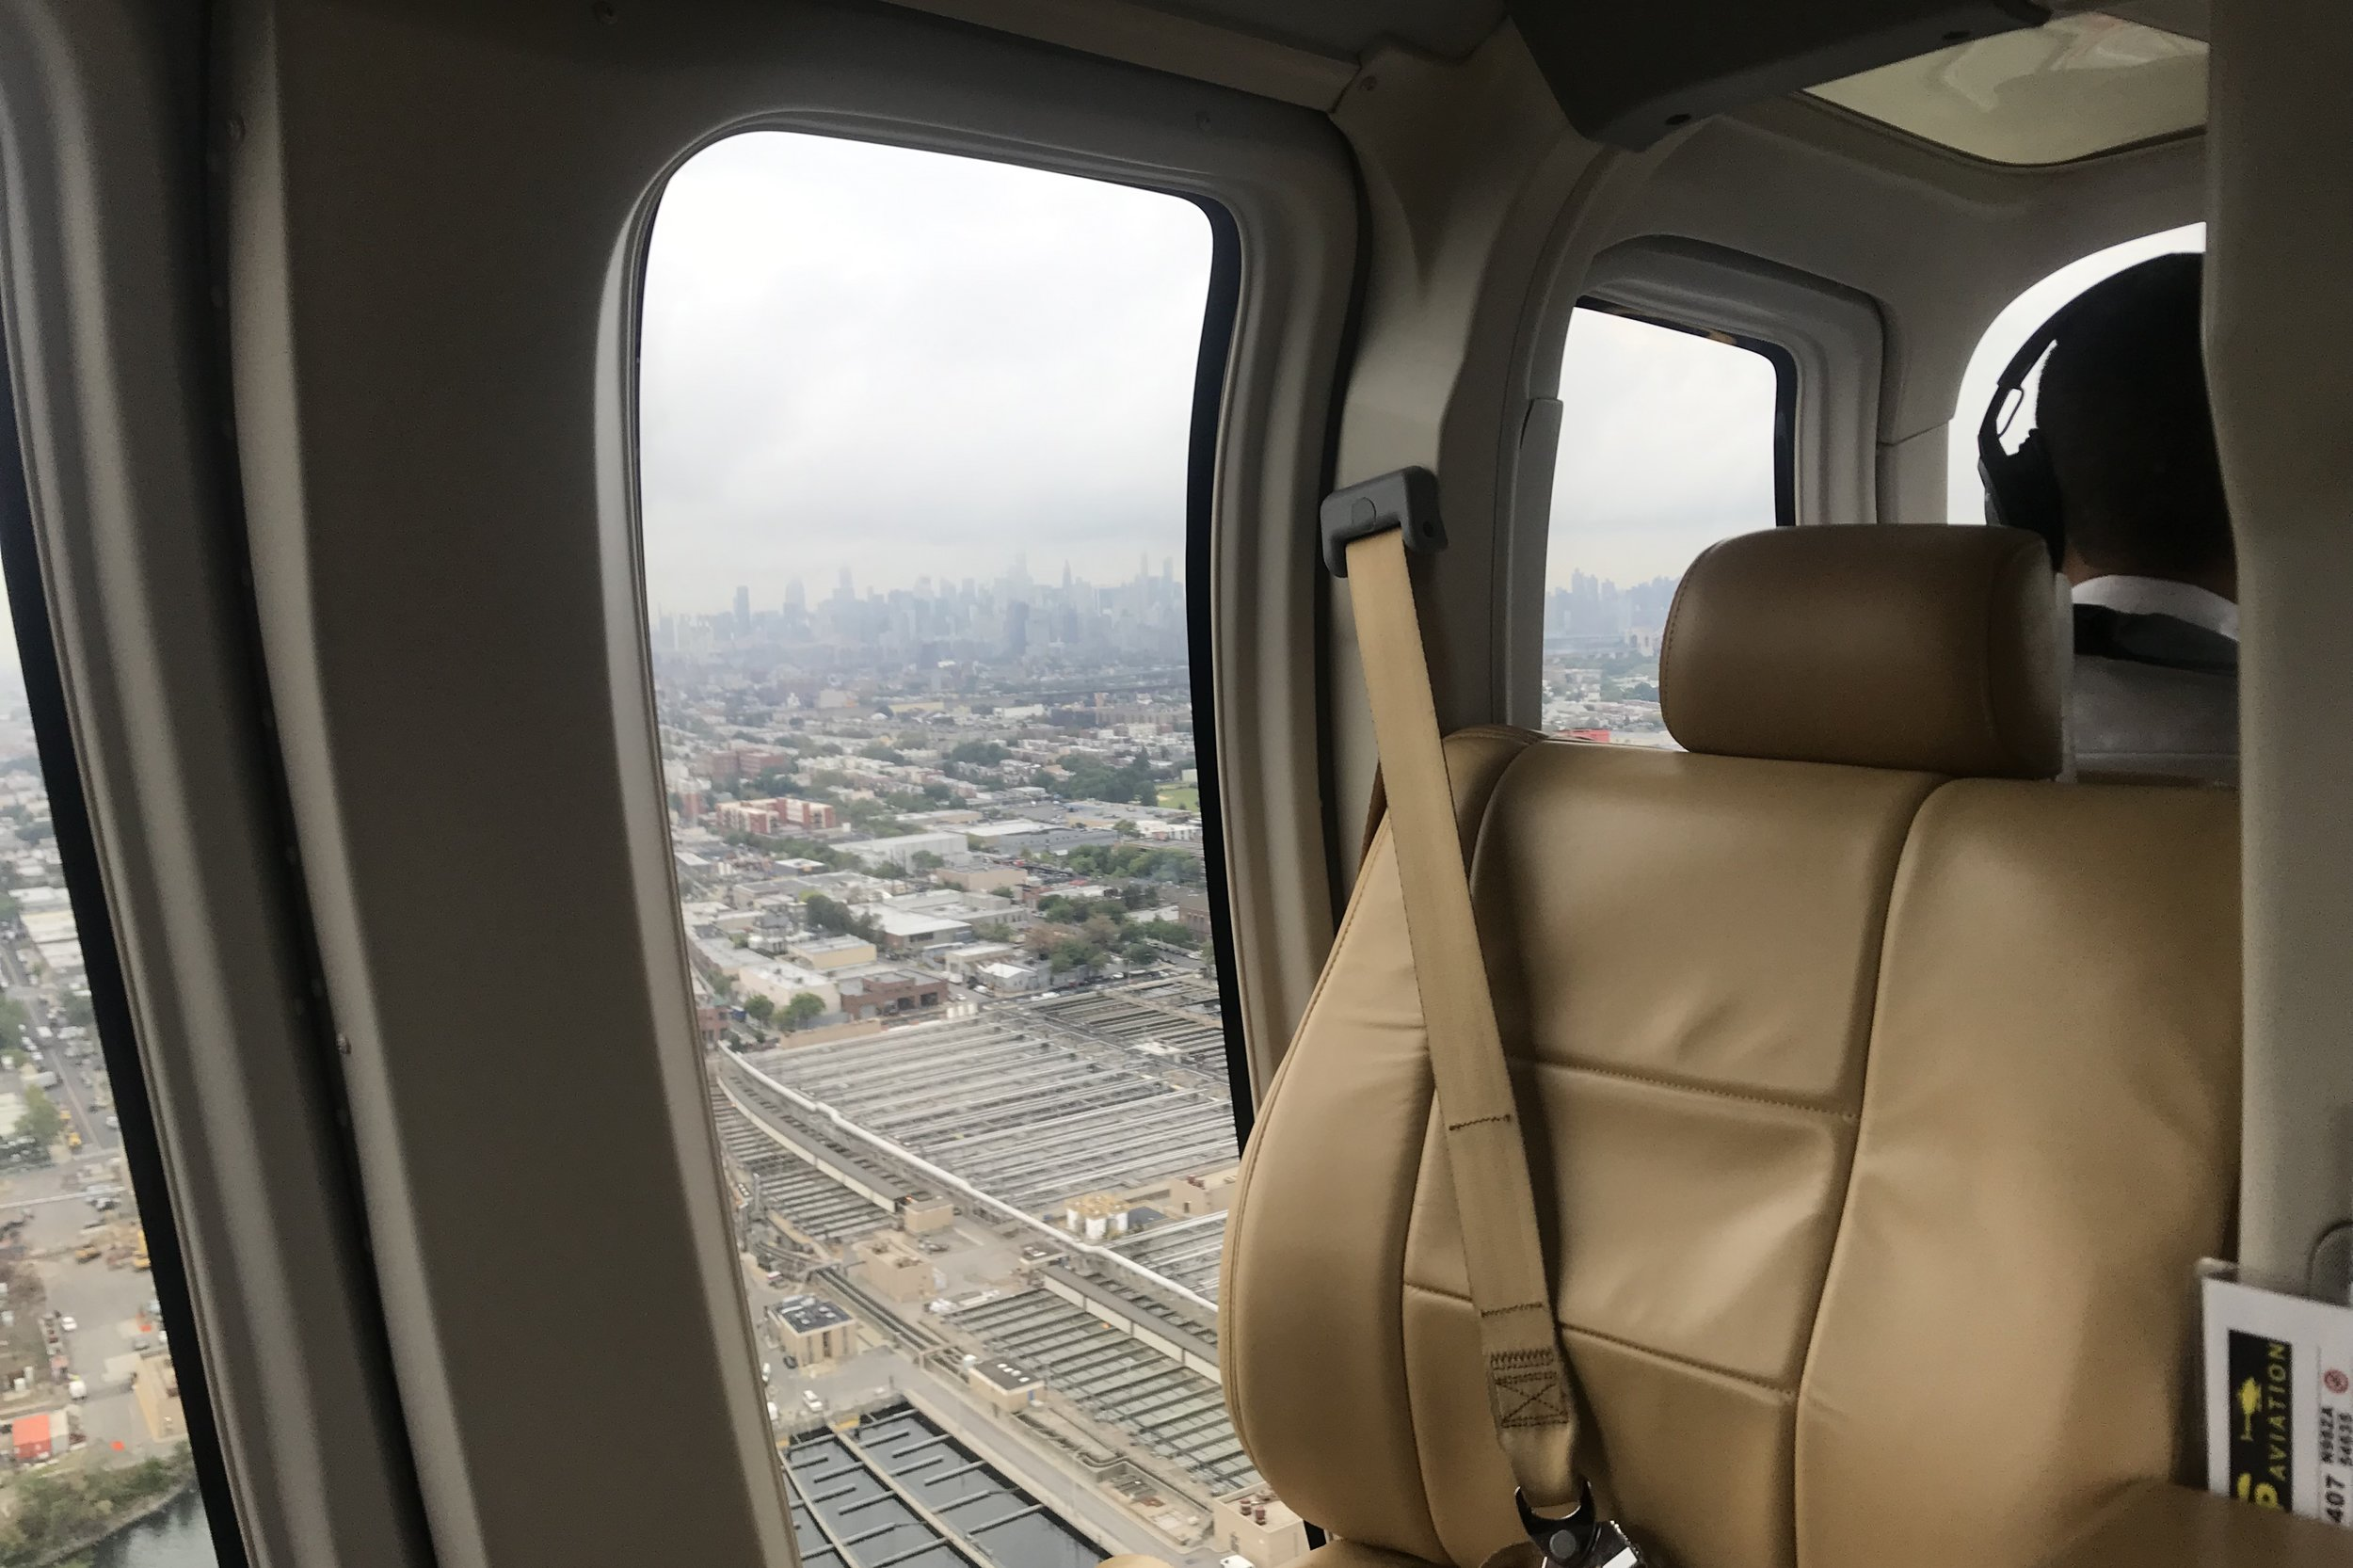 BLADE Helicopters – Views of Manhattan in the distance